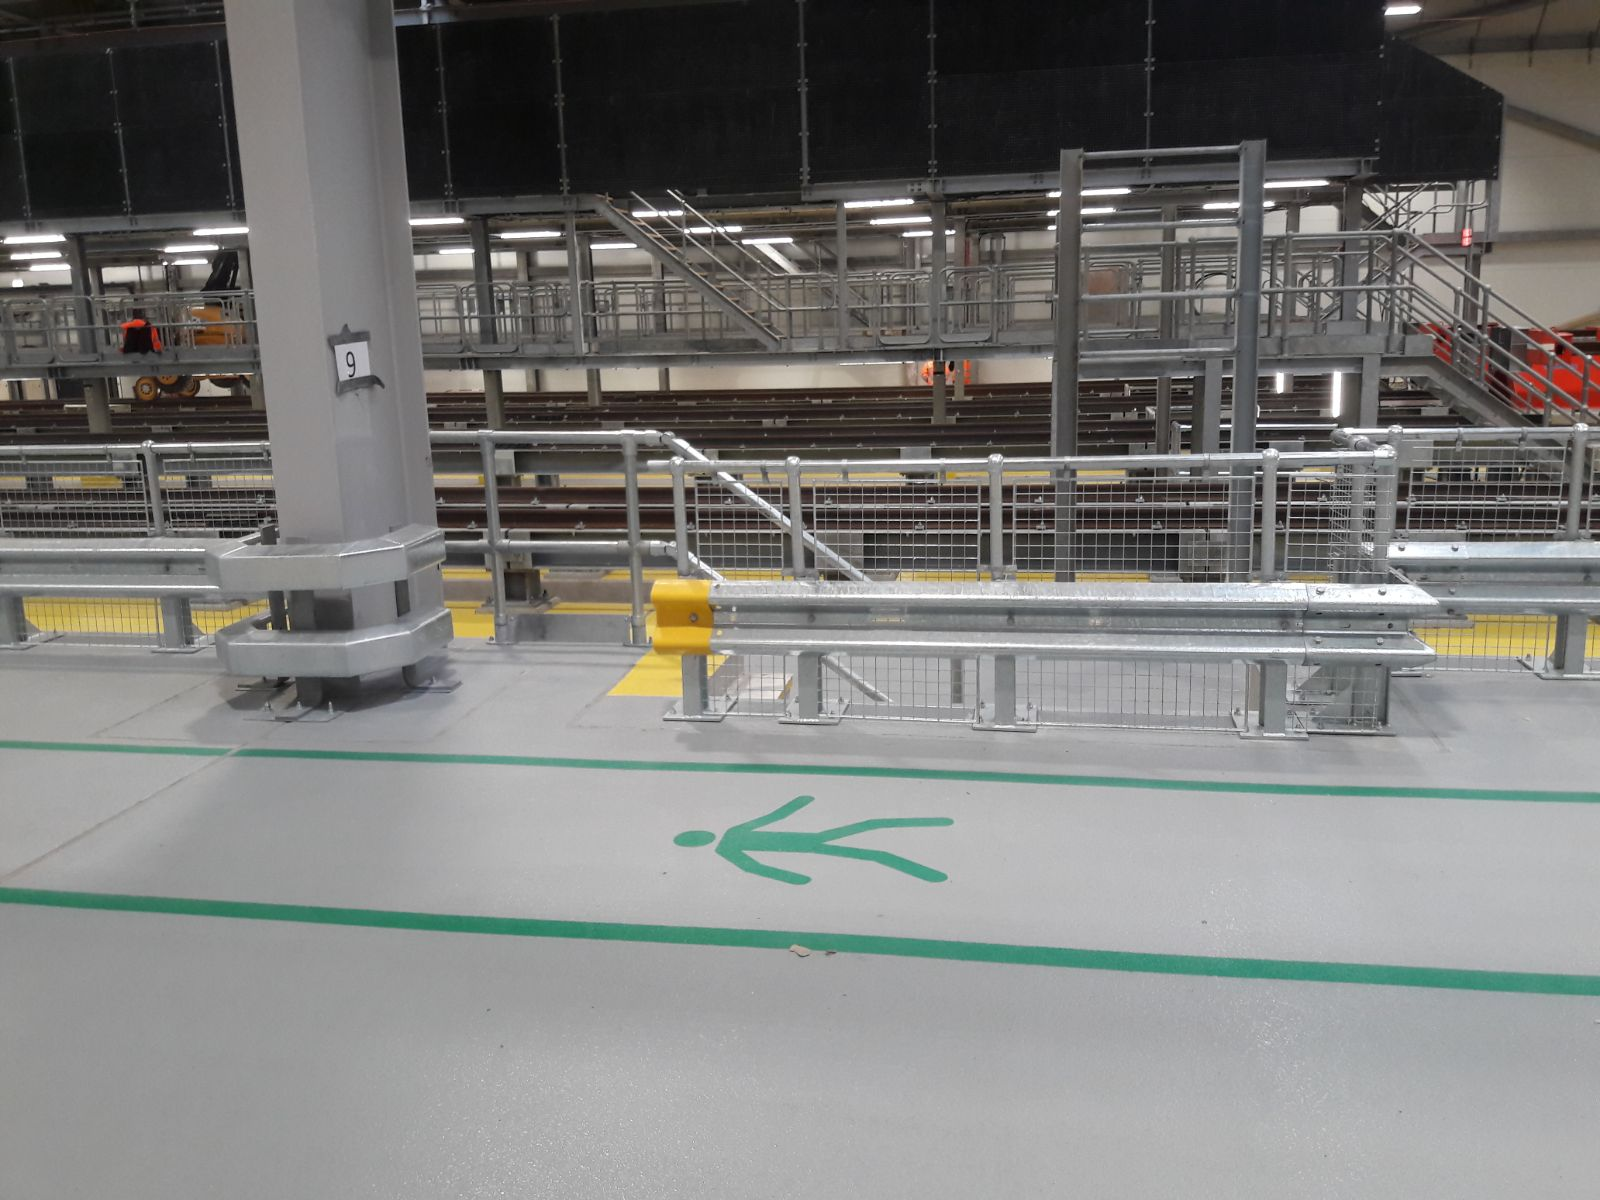 Mesh and handrail armco barriers